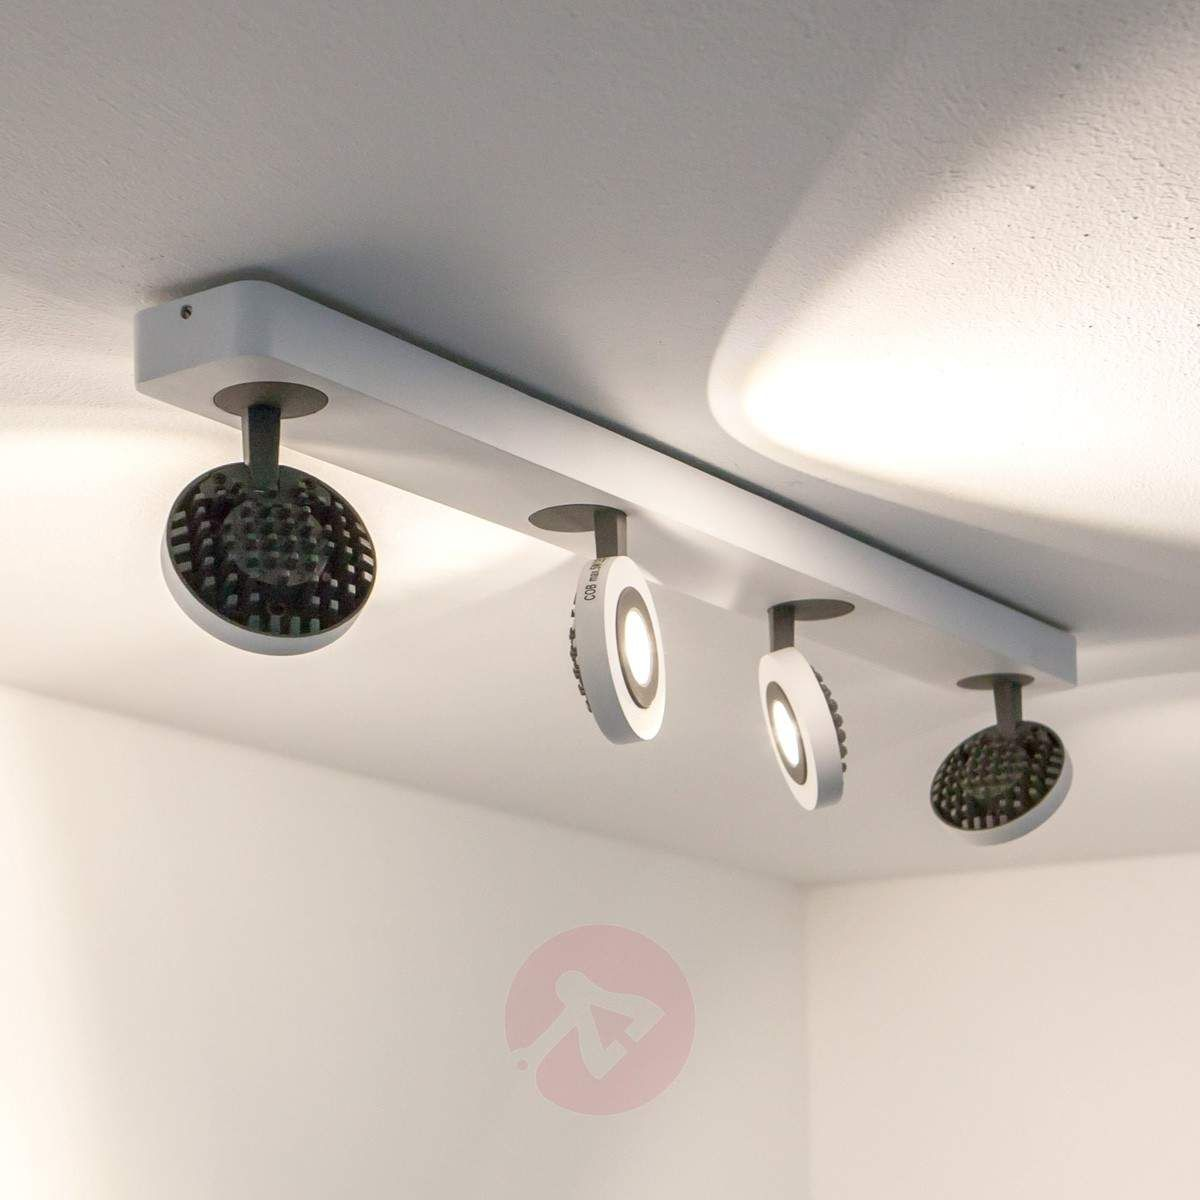 4 bulb cassanda led ceiling spotlight ceiling lights 9975015 30 4 bulb cassanda led ceiling spotlight ceiling lights 9975015 30 aloadofball Image collections